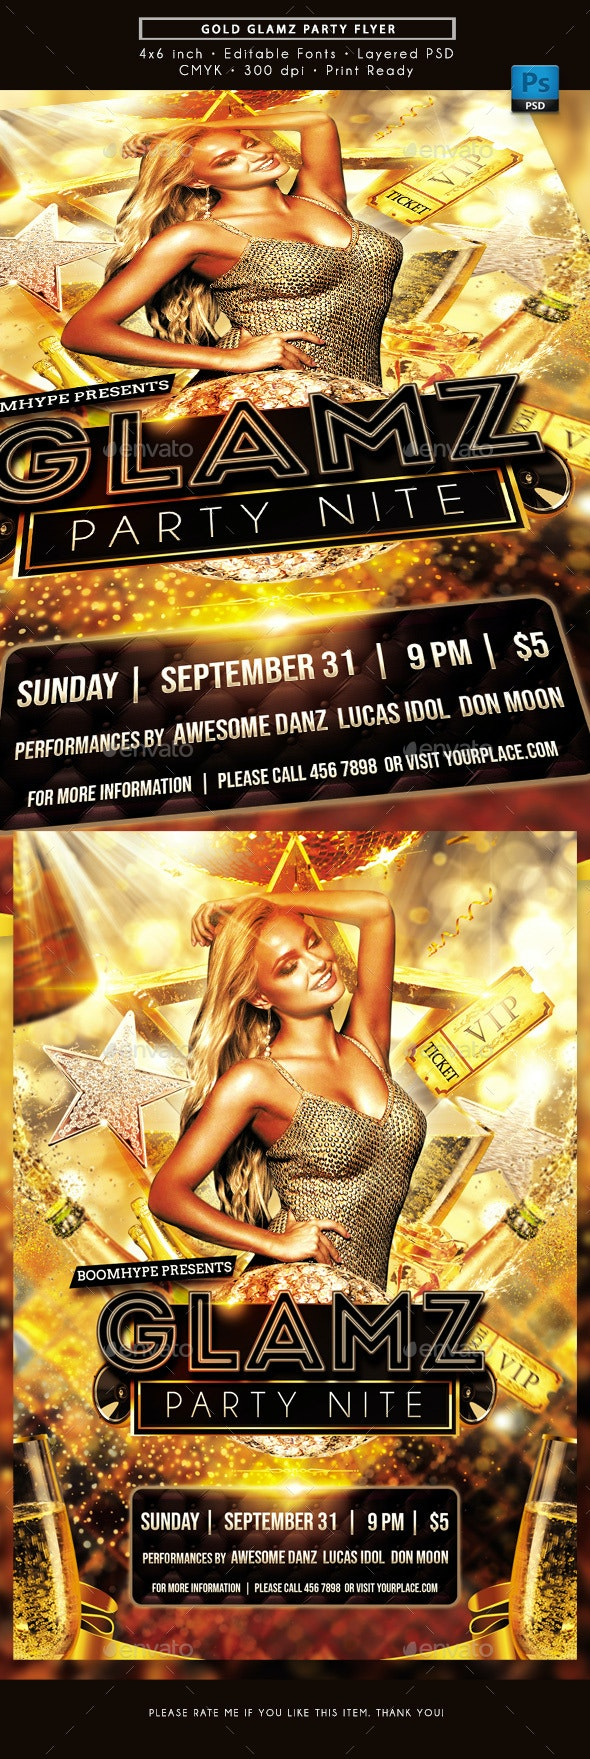 Gold Glamz Party Nite Flyer - Clubs & Parties Events